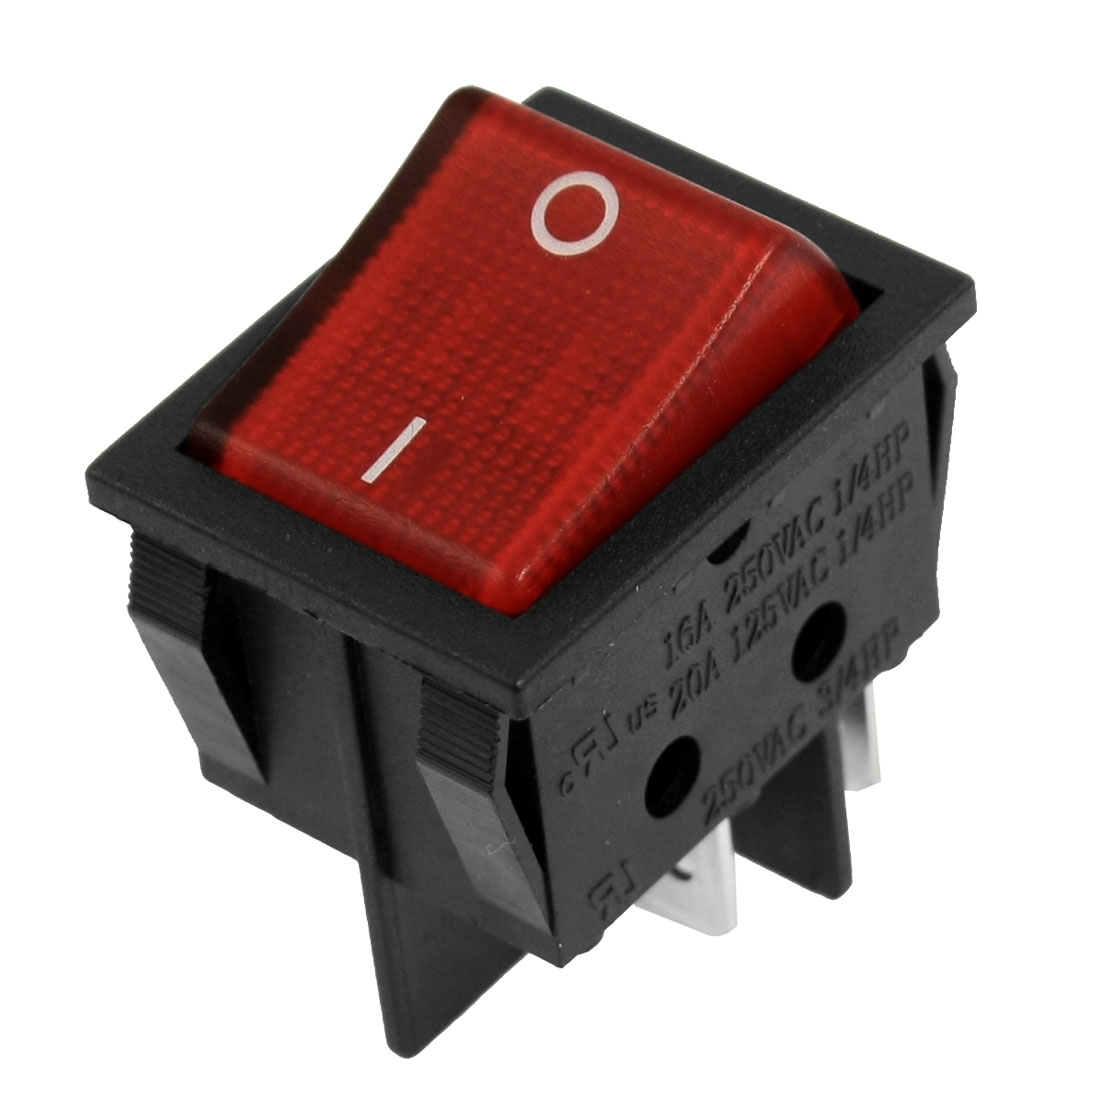 Red Button 4 Pins DPST On/Off Neon Light Rocker Switch AC 250V/15A